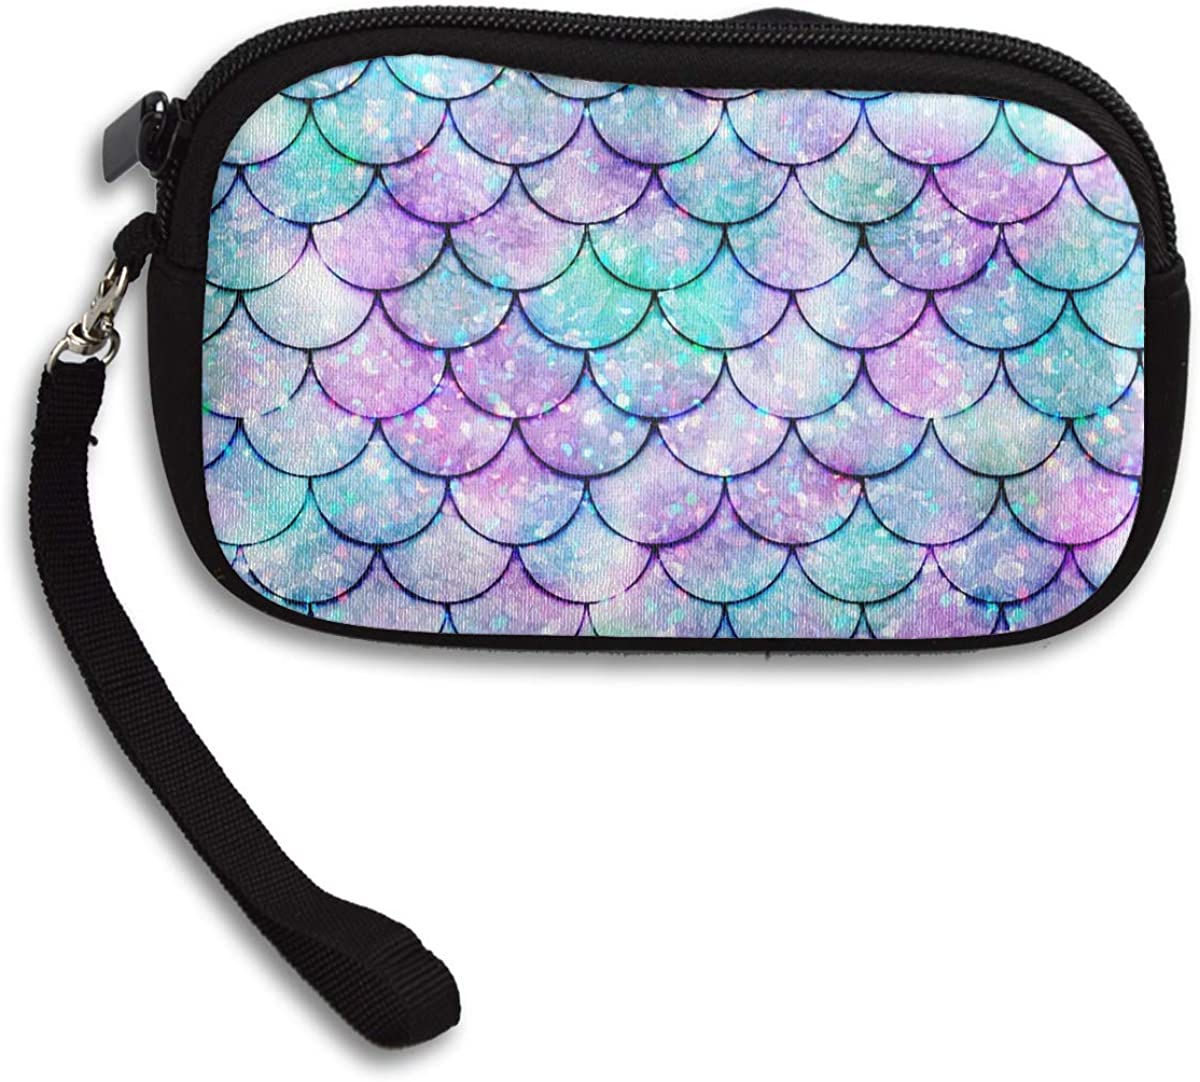 Small Clutch Organizer Wallets Ladies Clutch Long Purse Portable Tote Purse Travel Purse Wristlet Tote Bag Beautiful Sparkling Mermaid Scales Wristlet Clutch Wallet for Women Girls